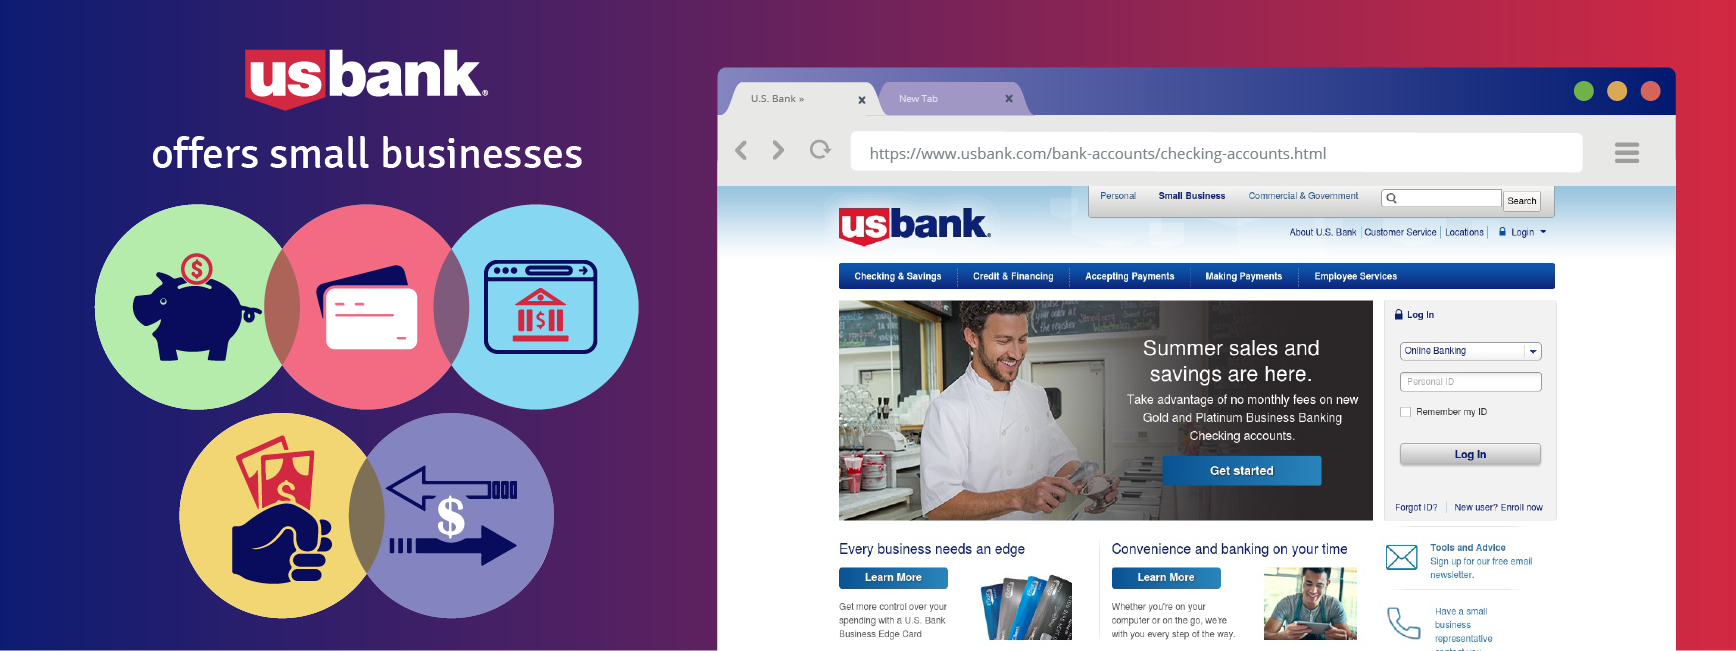 U.S. Bank offers lots of perks for business owners